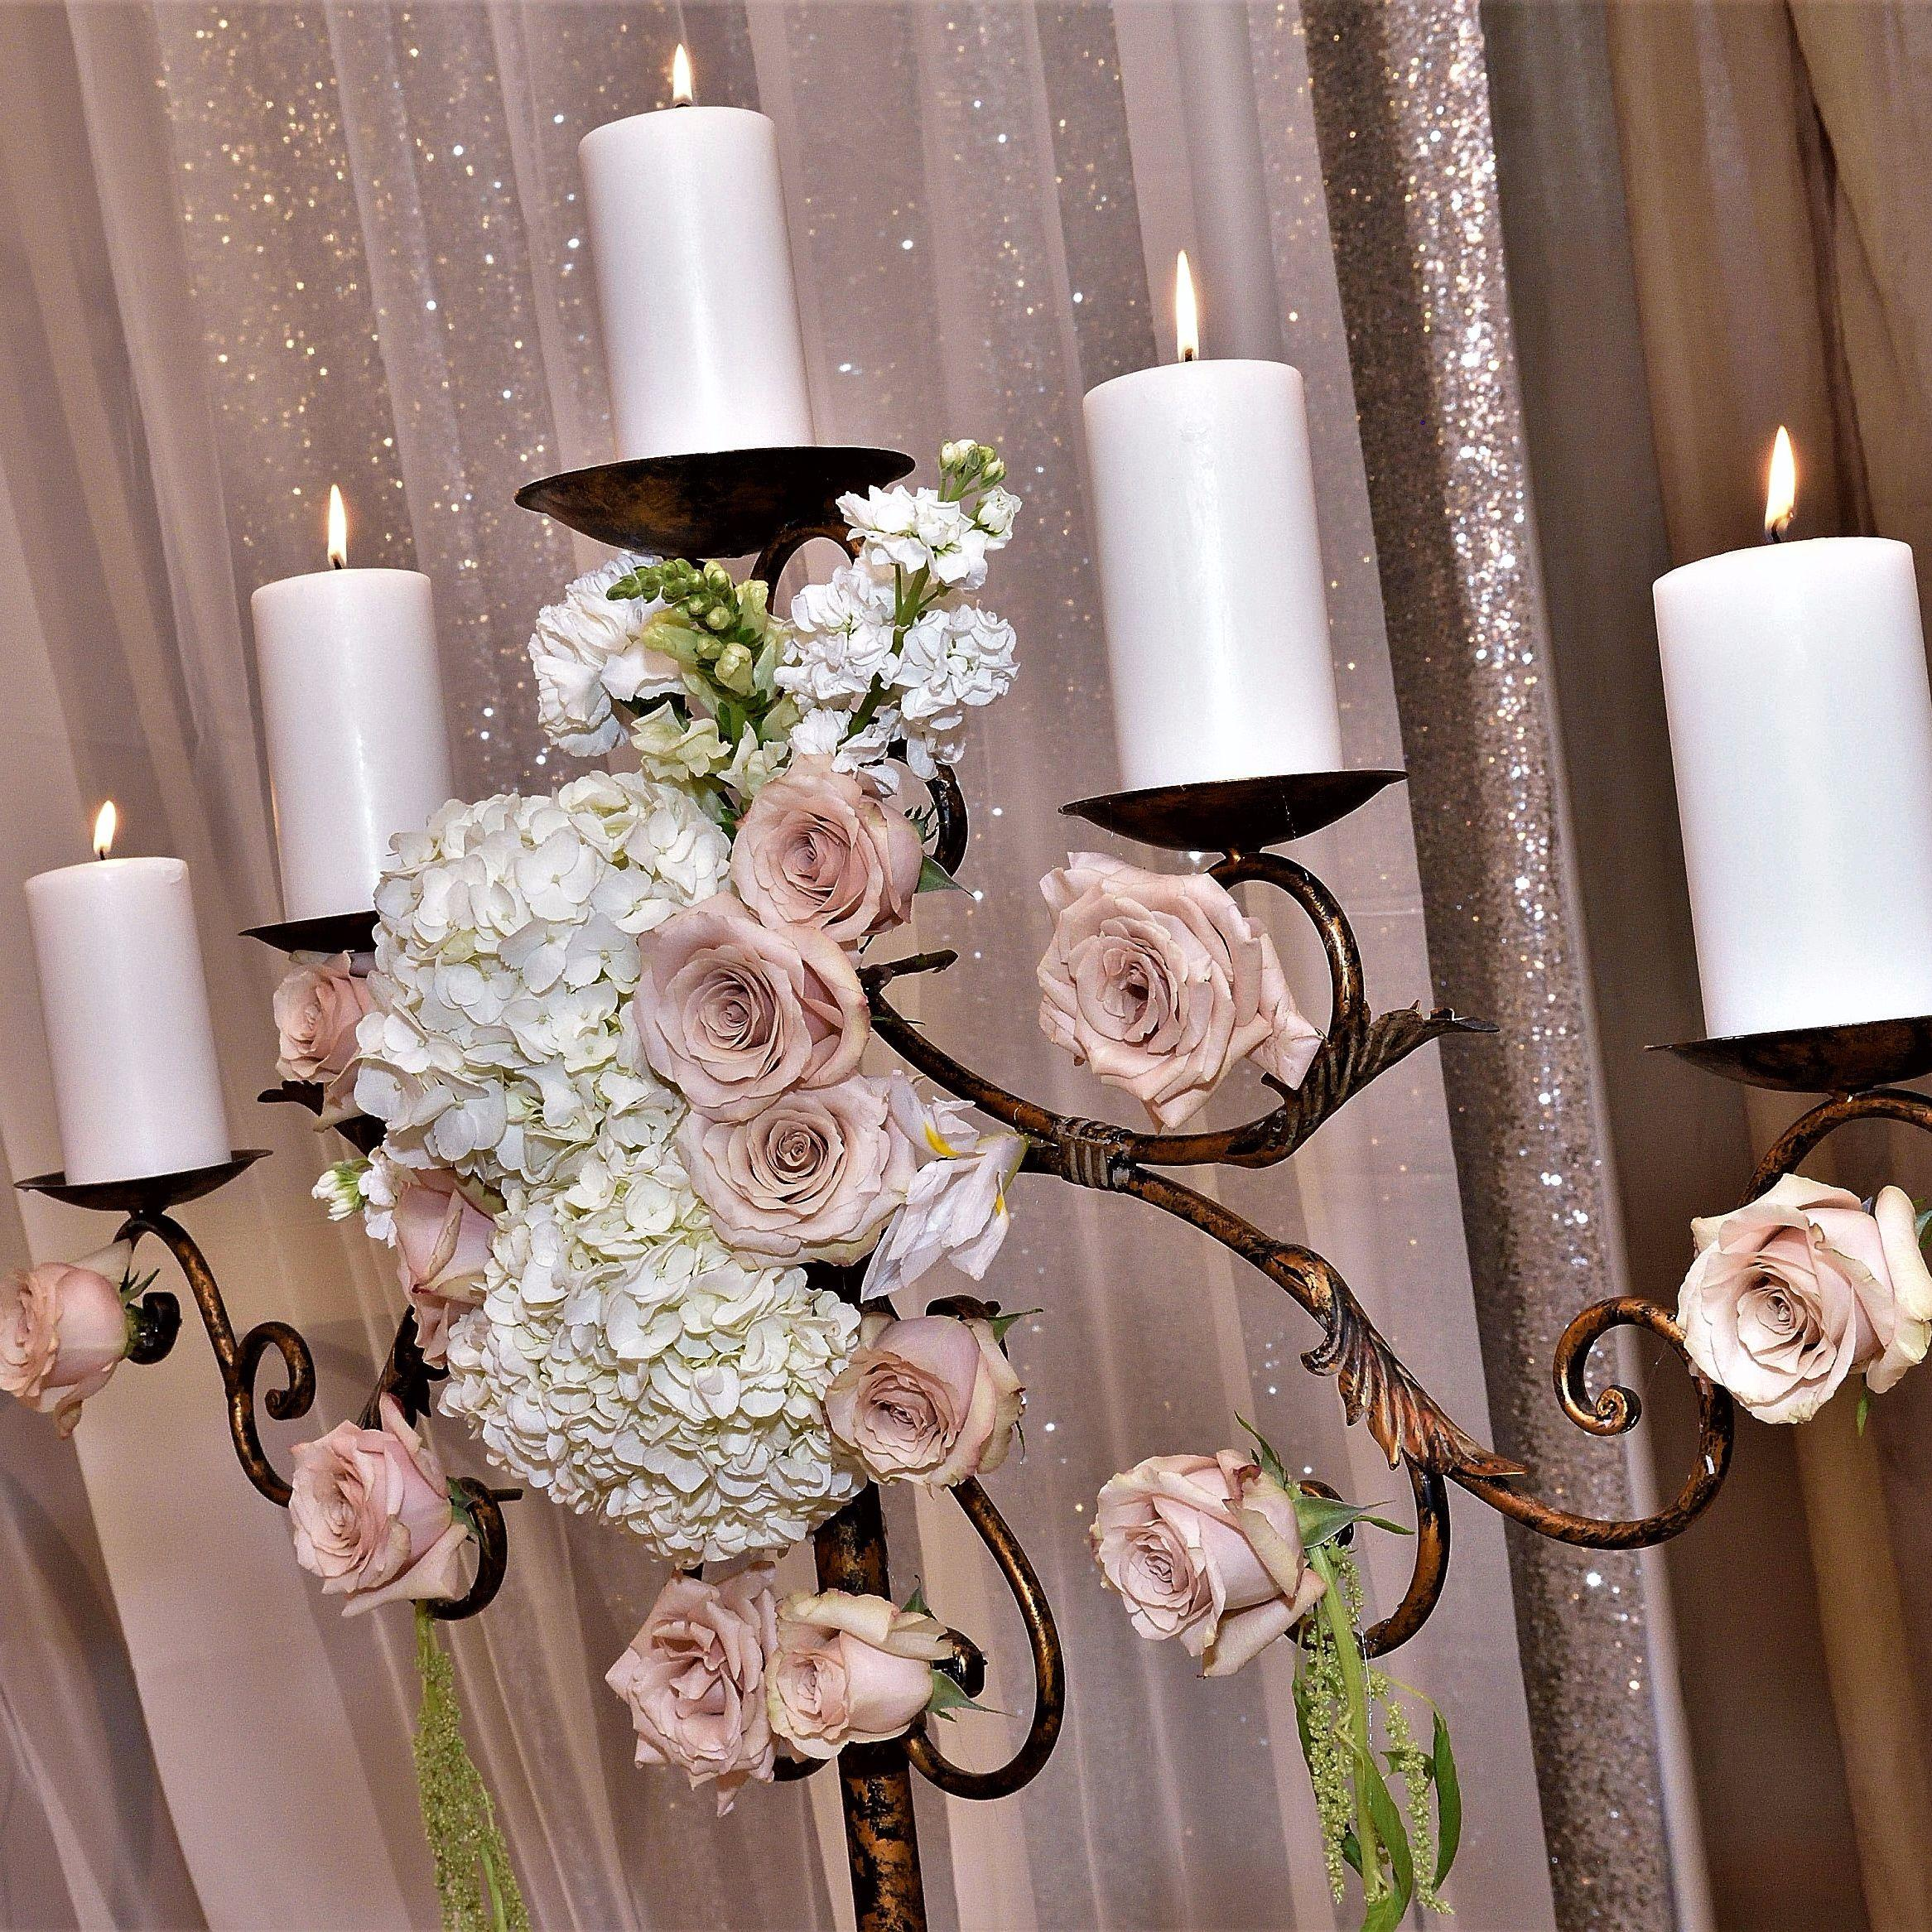 The Orchid: Luxury Flower Design